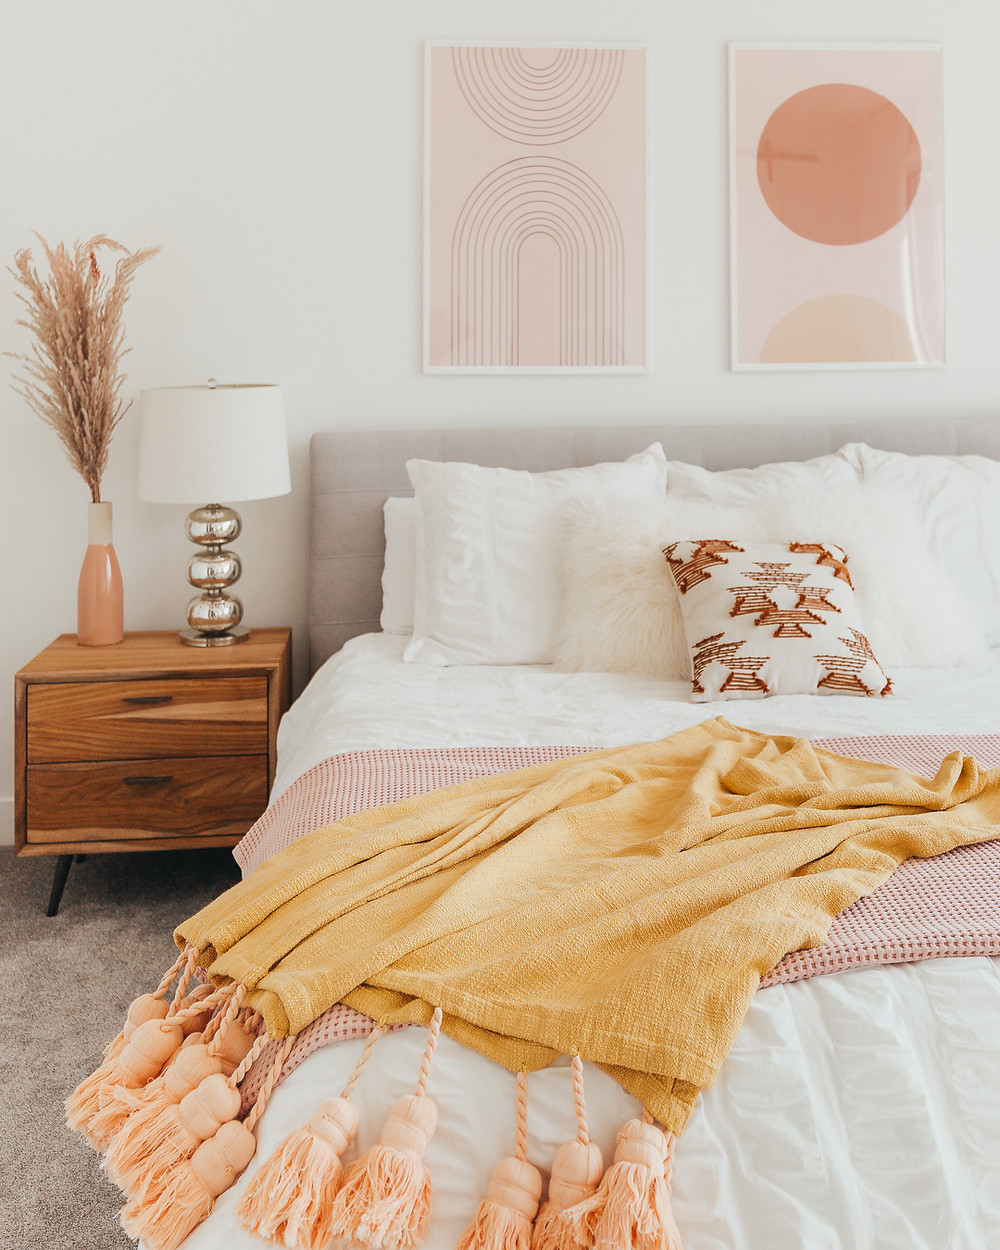 blush colored framed art pair above grey fabric headboard white sheets and duvet pink and yellow throws on bed wood side table with silver table lamp pink vase with pampas grass